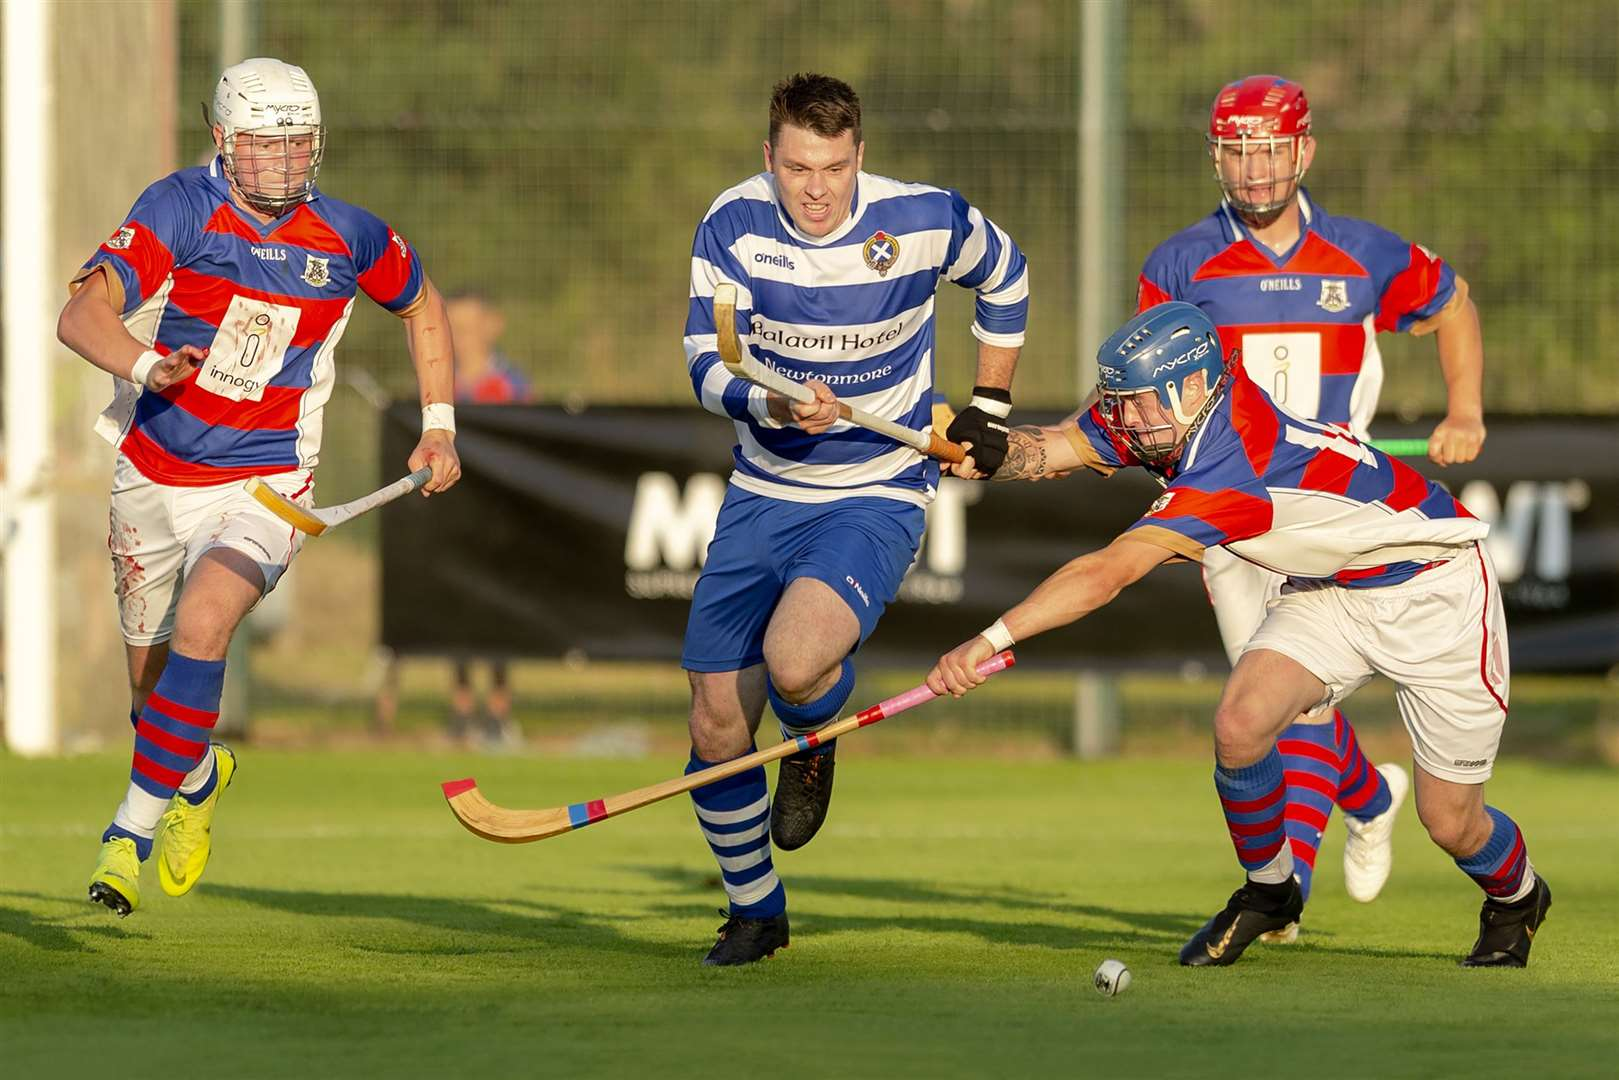 Newtonmore's Steven Macdonald is challenged by James Falconer (Kingussie) in the evening sunshine.